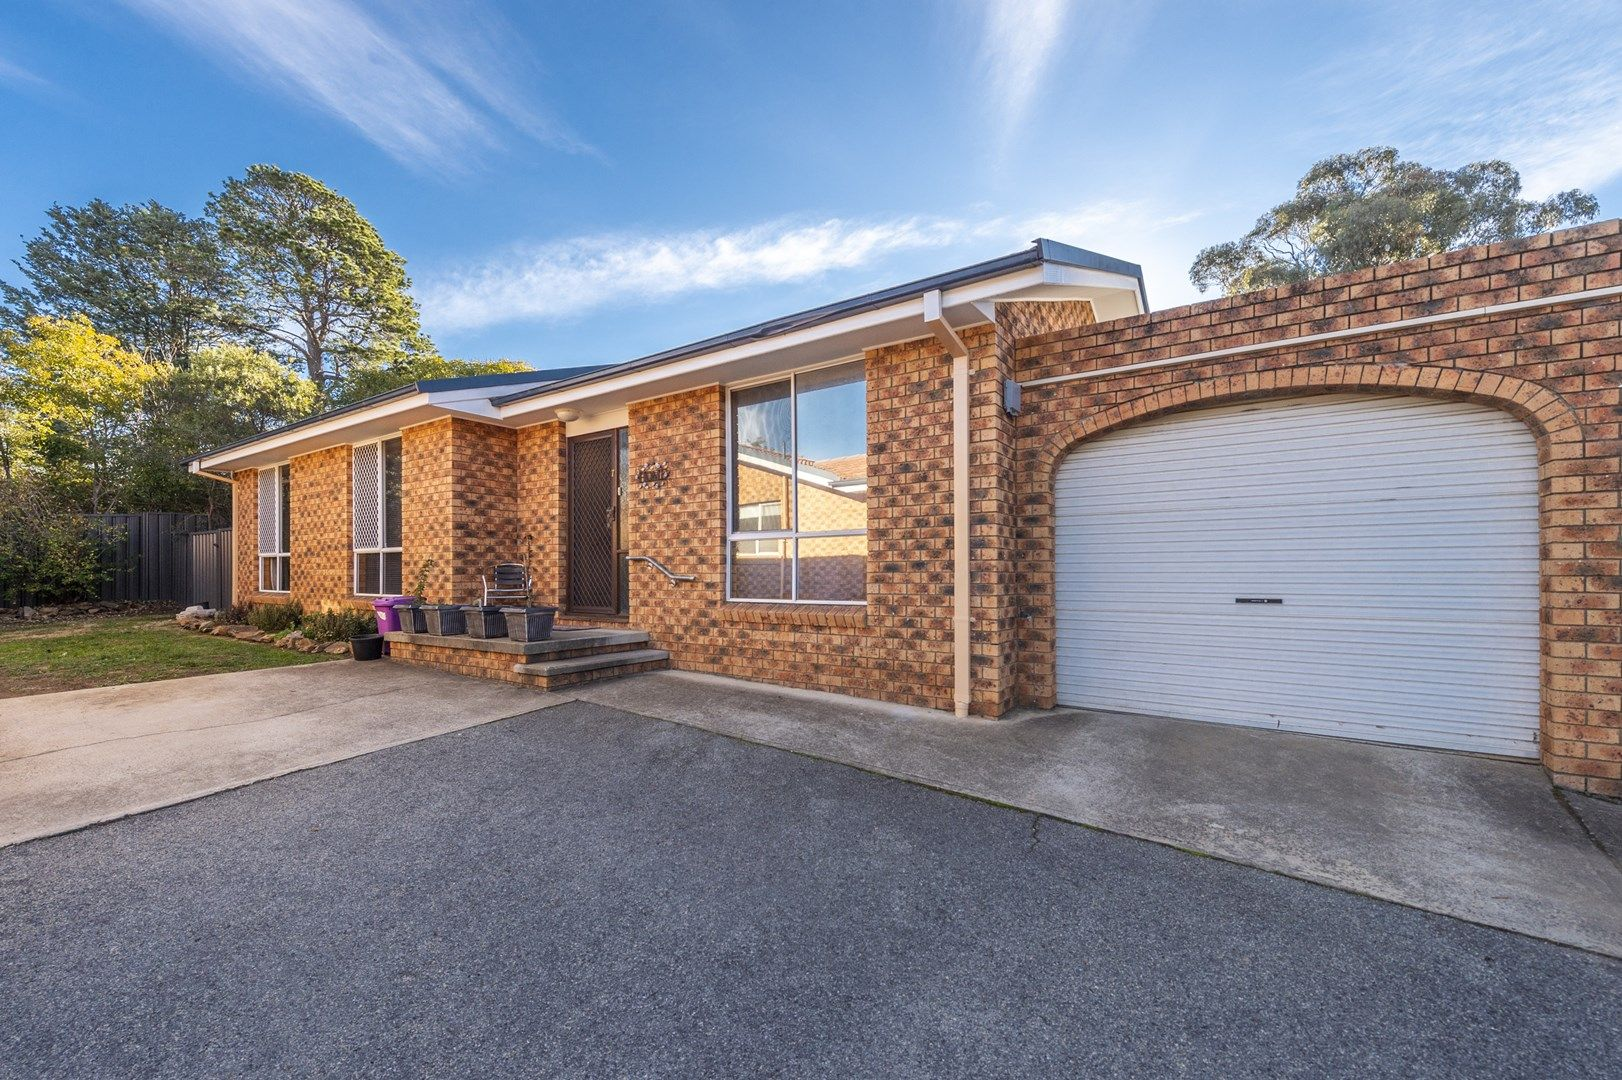 7/10-12 Booth Street, Queanbeyan NSW 2620, Image 0